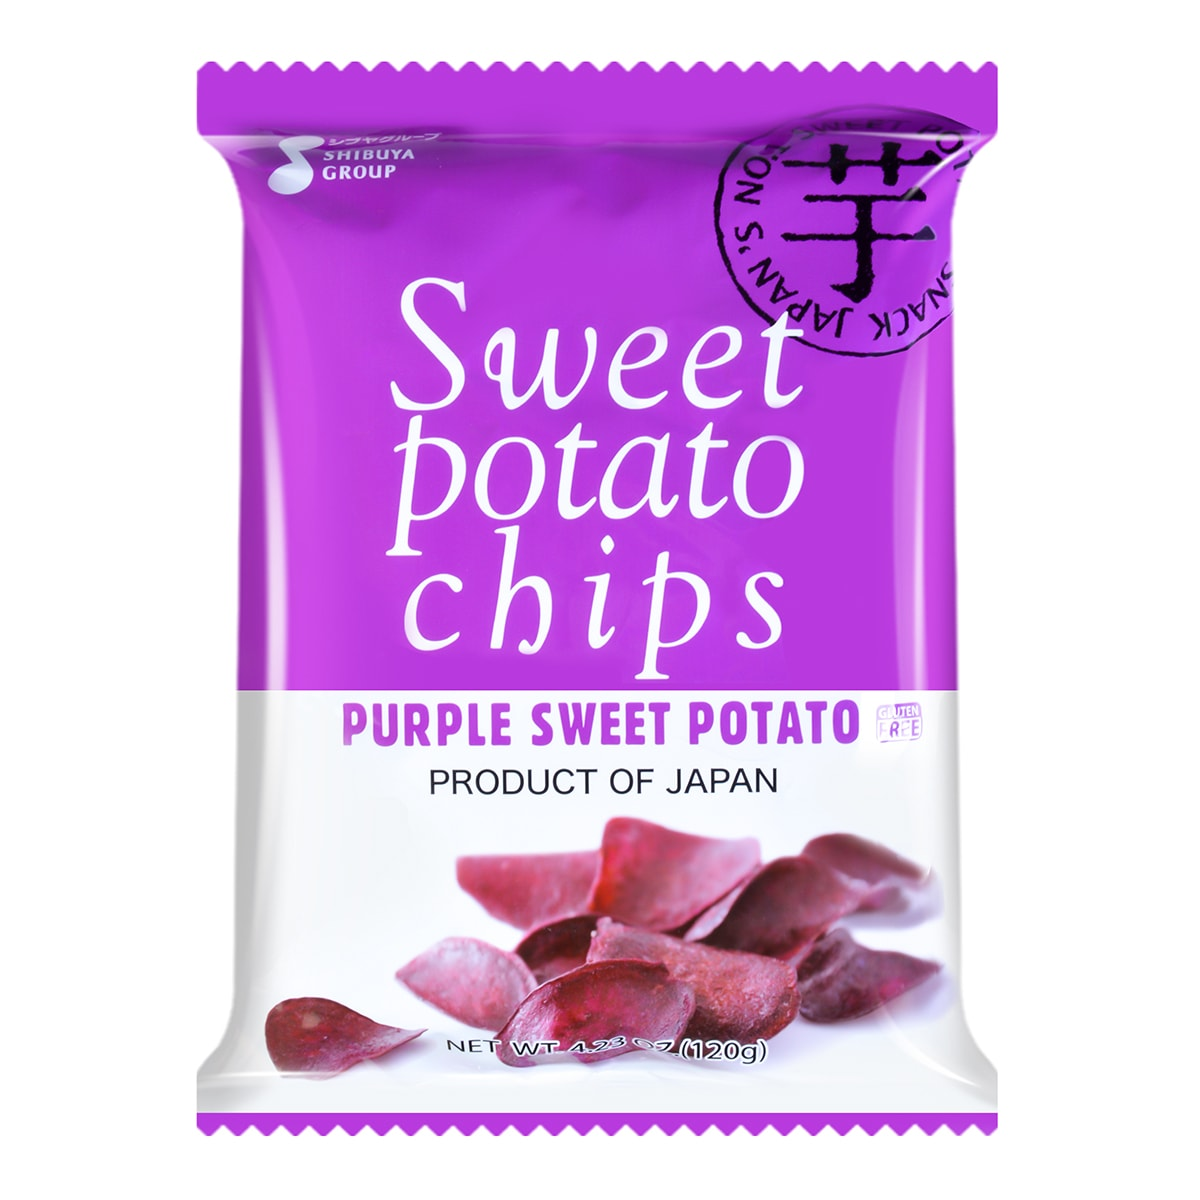 SHIBUYA Leisure Sweet Purple Yam Chips 120g